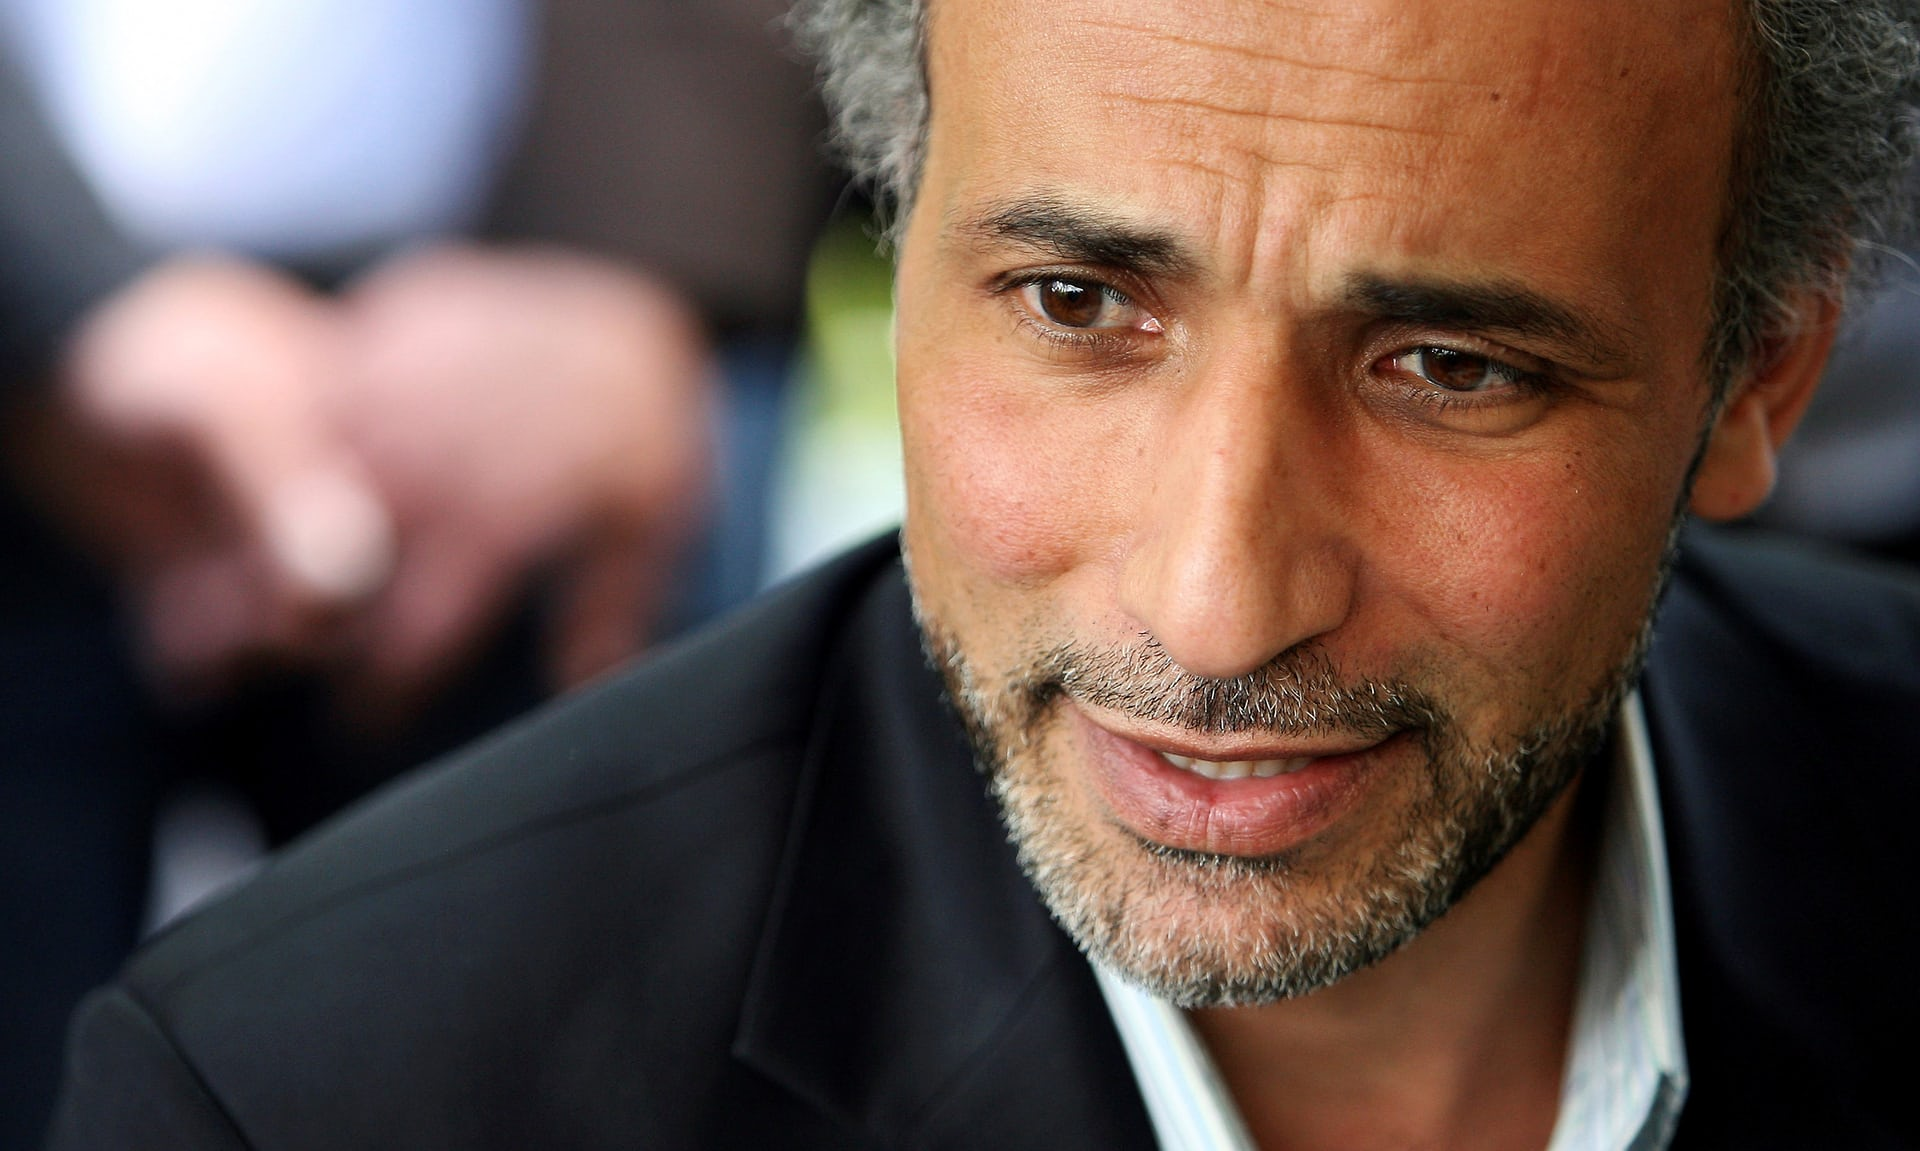 Tariq Ramadan's case: The infringement of human rights under legal disguise.